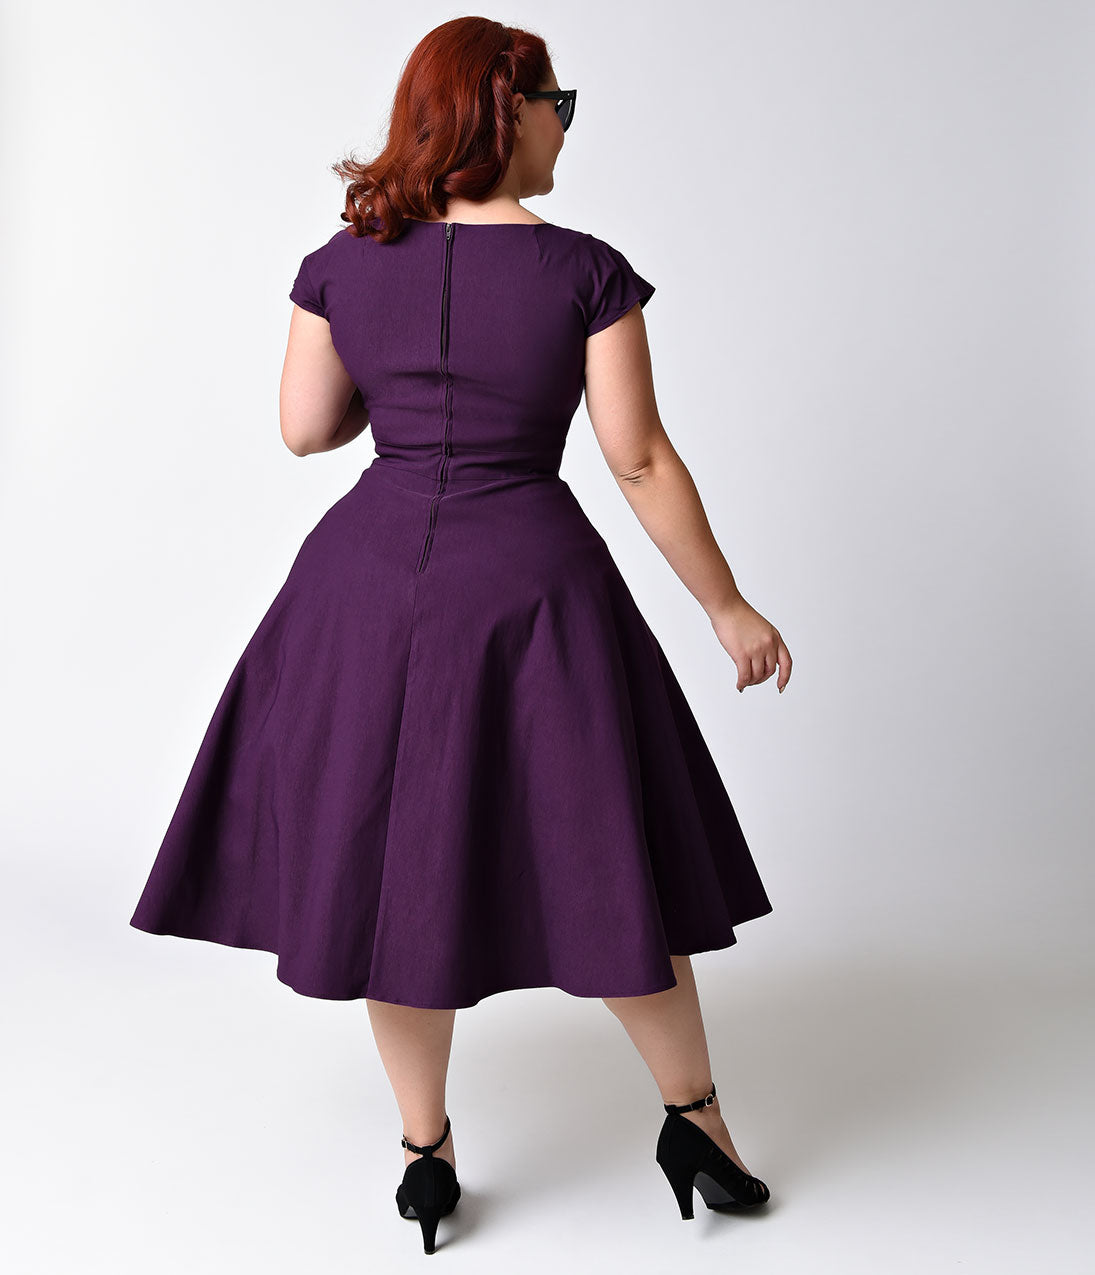 b825ce292a6 Plus Size Vintage Pin Up Clothing   Dresses – Unique Vintage